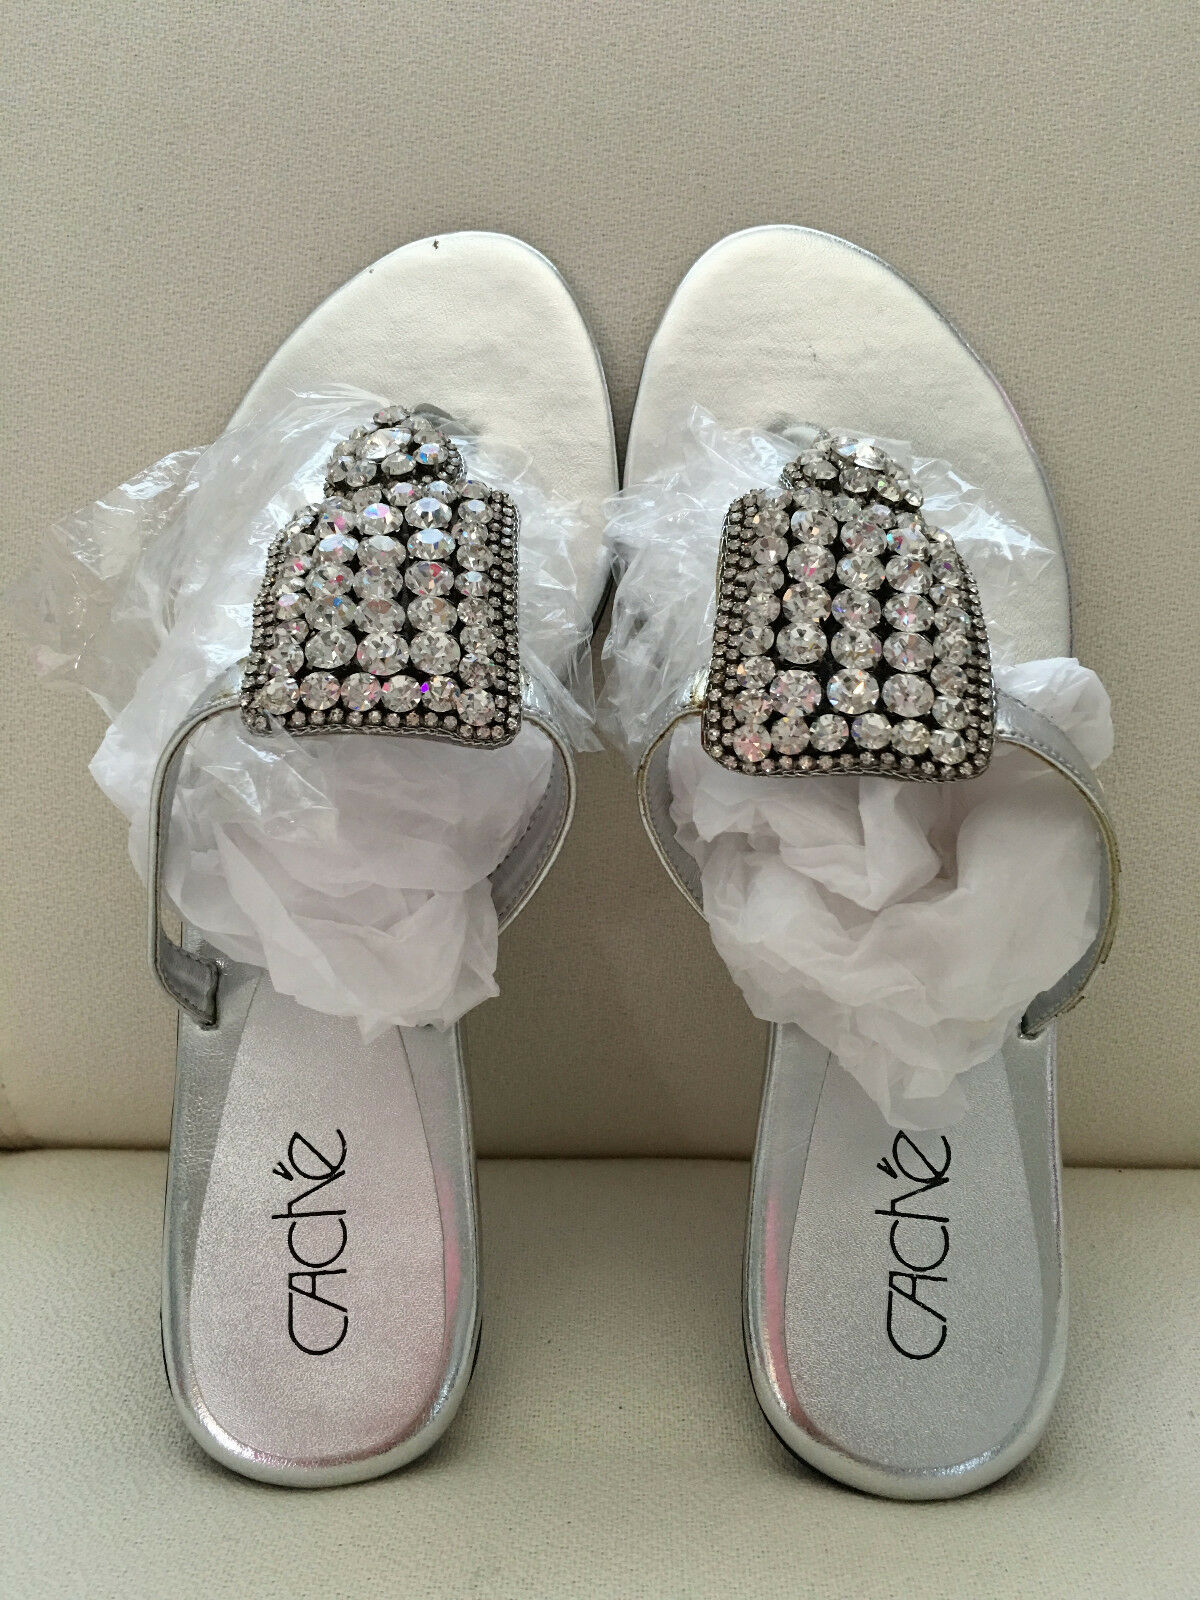 Cache Rhinestone Sliver Sandals Taille 8   7.5M Embellished Flat chaussures New In Box